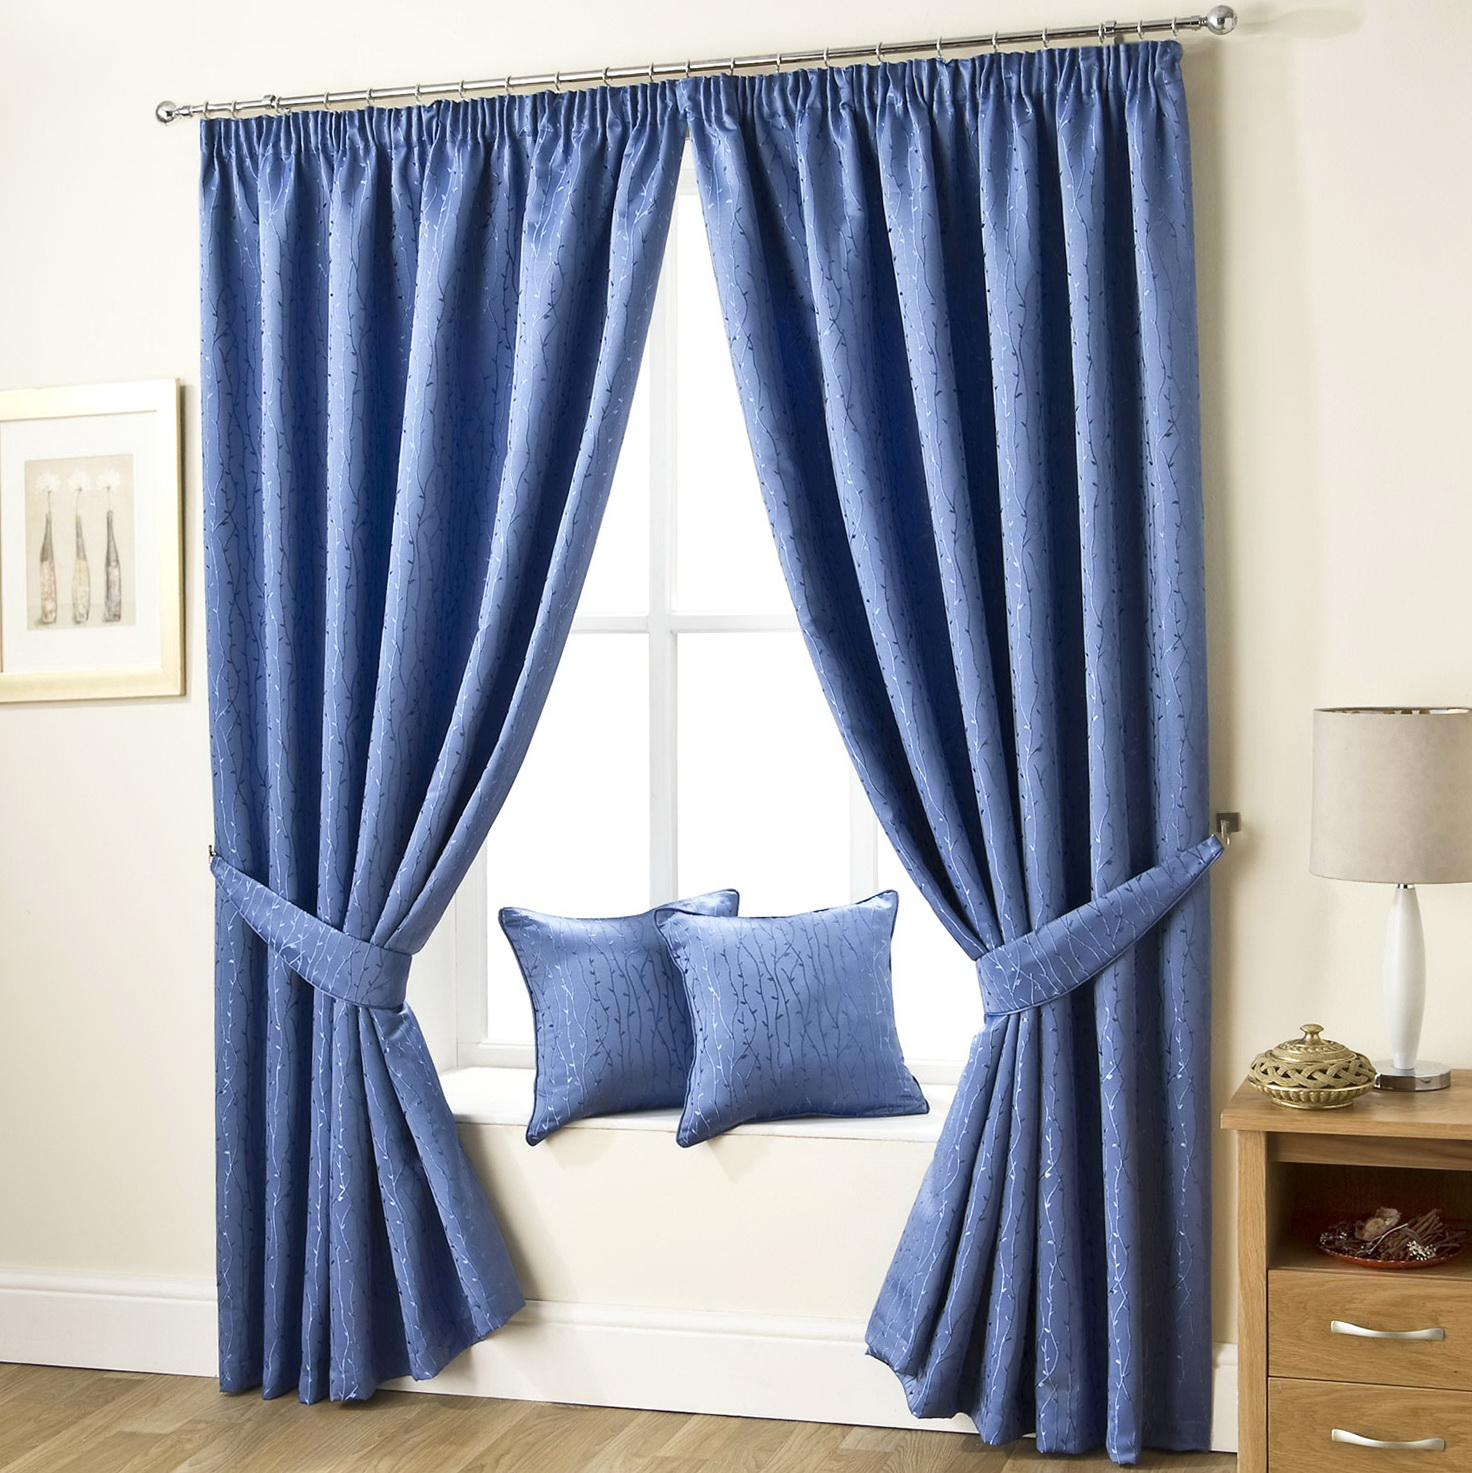 Noise Reducing Curtains Uk Home Design Ideas